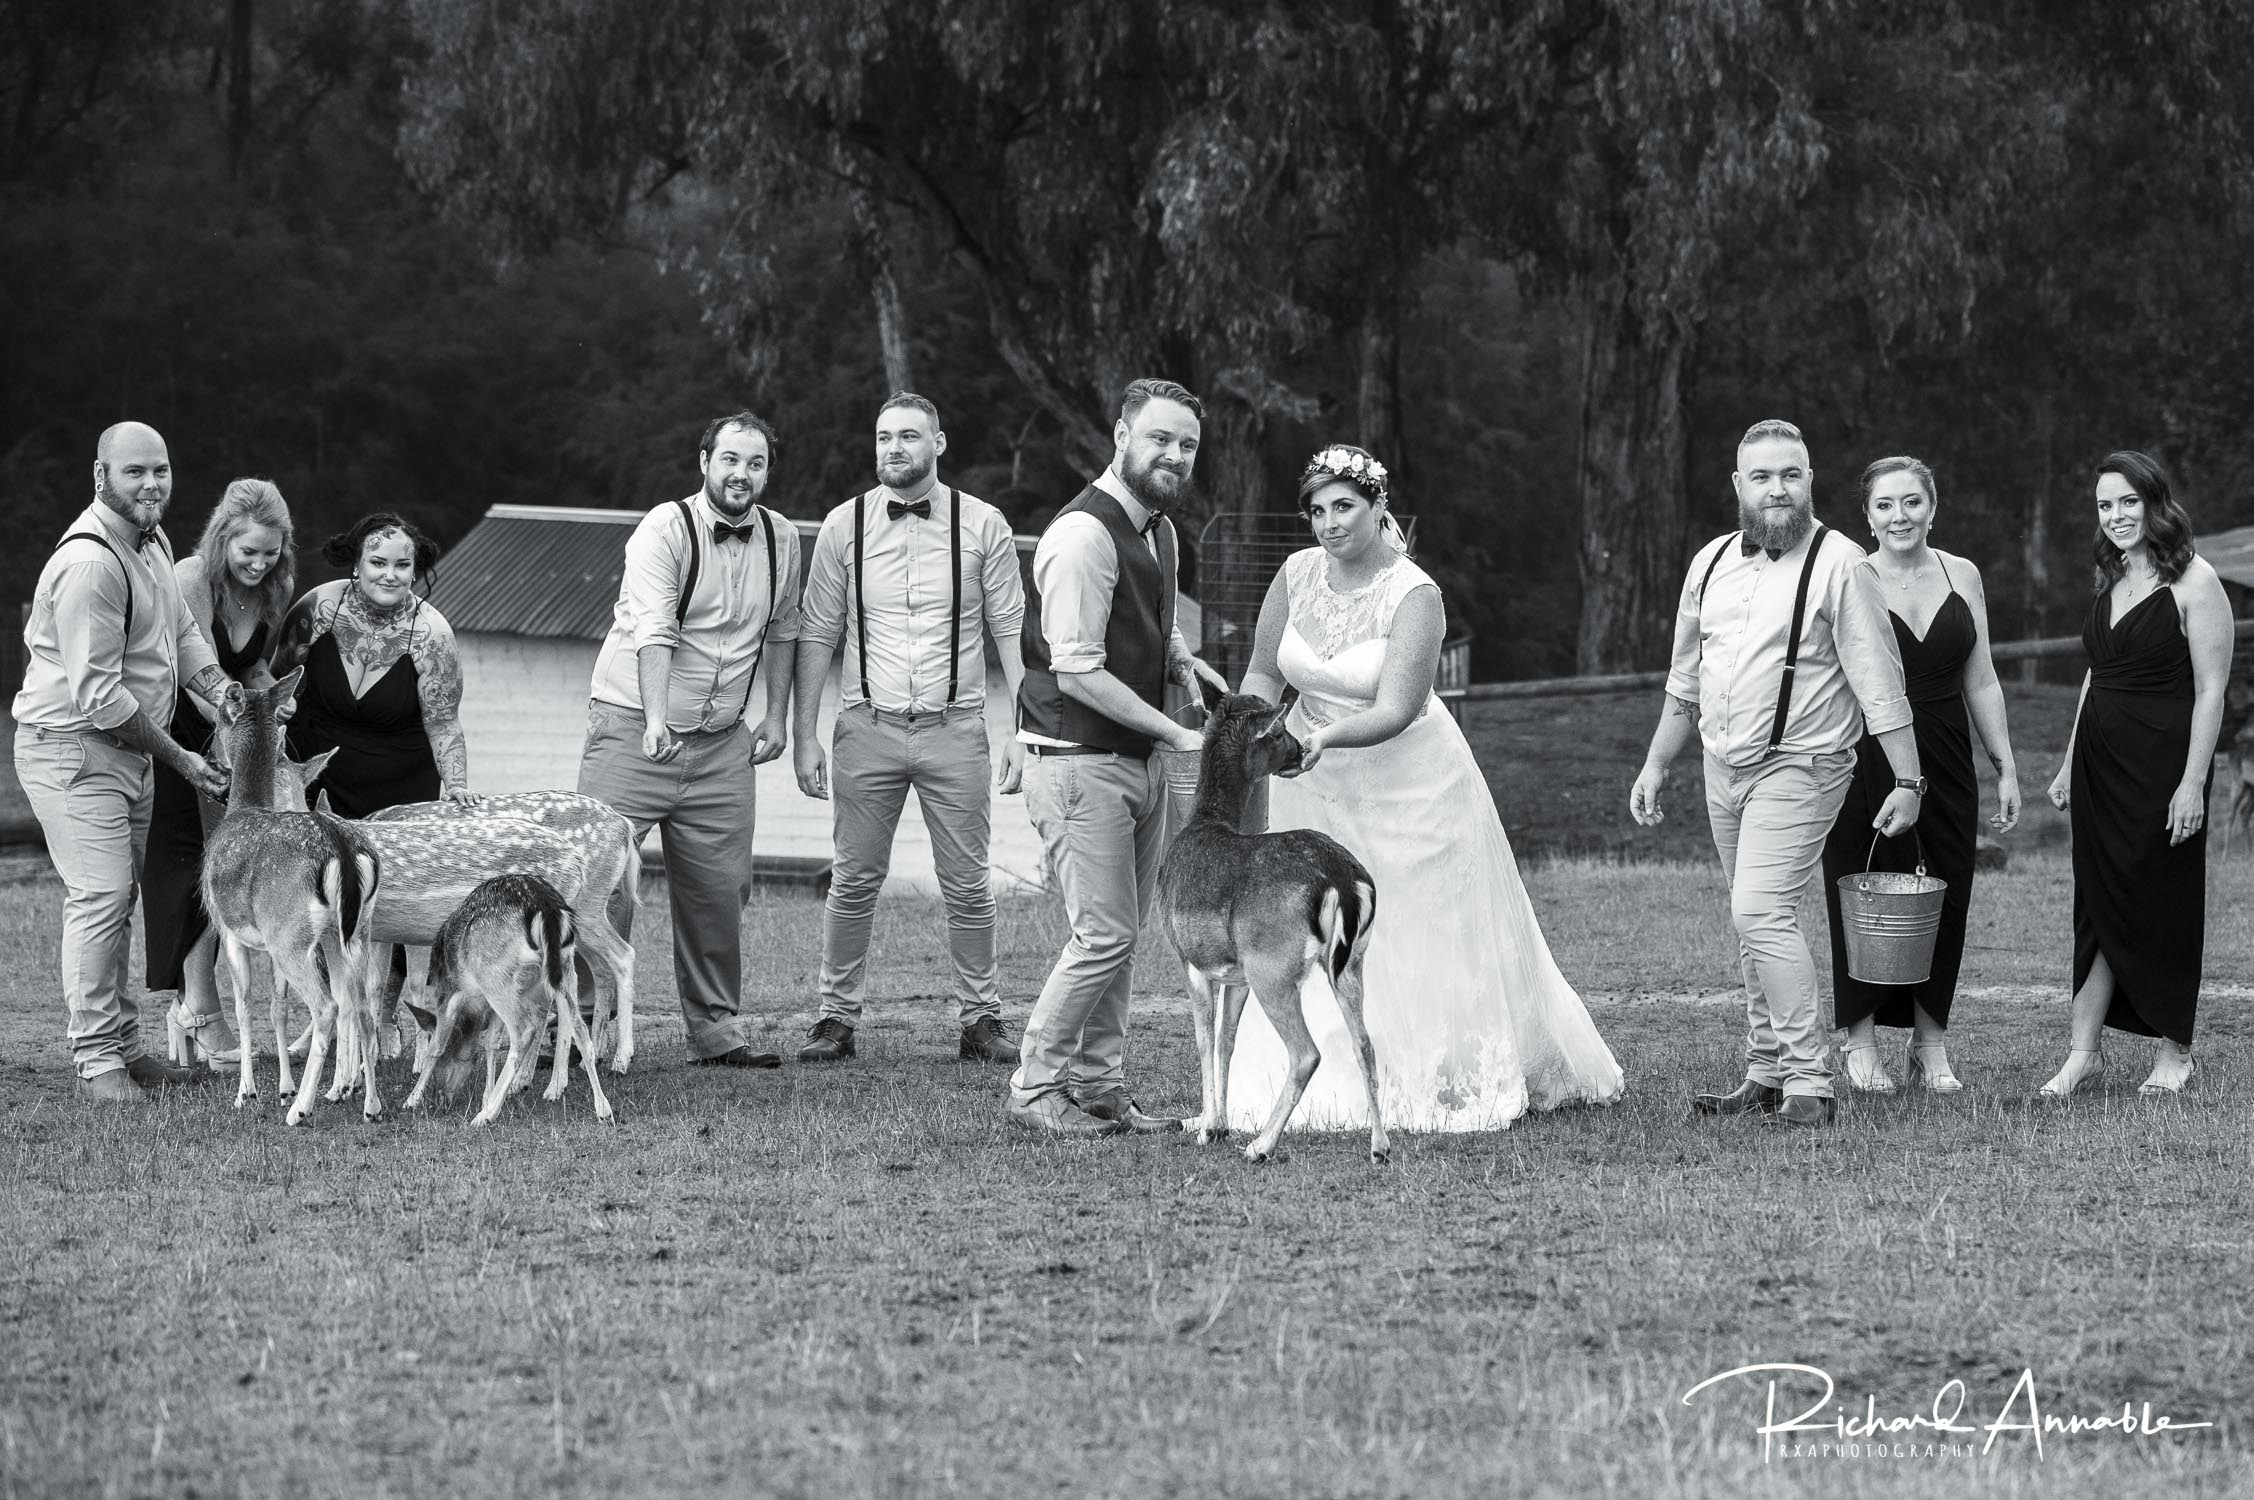 Sacha & Ben - Click here to view my favourite photographs from Sacha & Ben's Gum Gully Farm wedding.